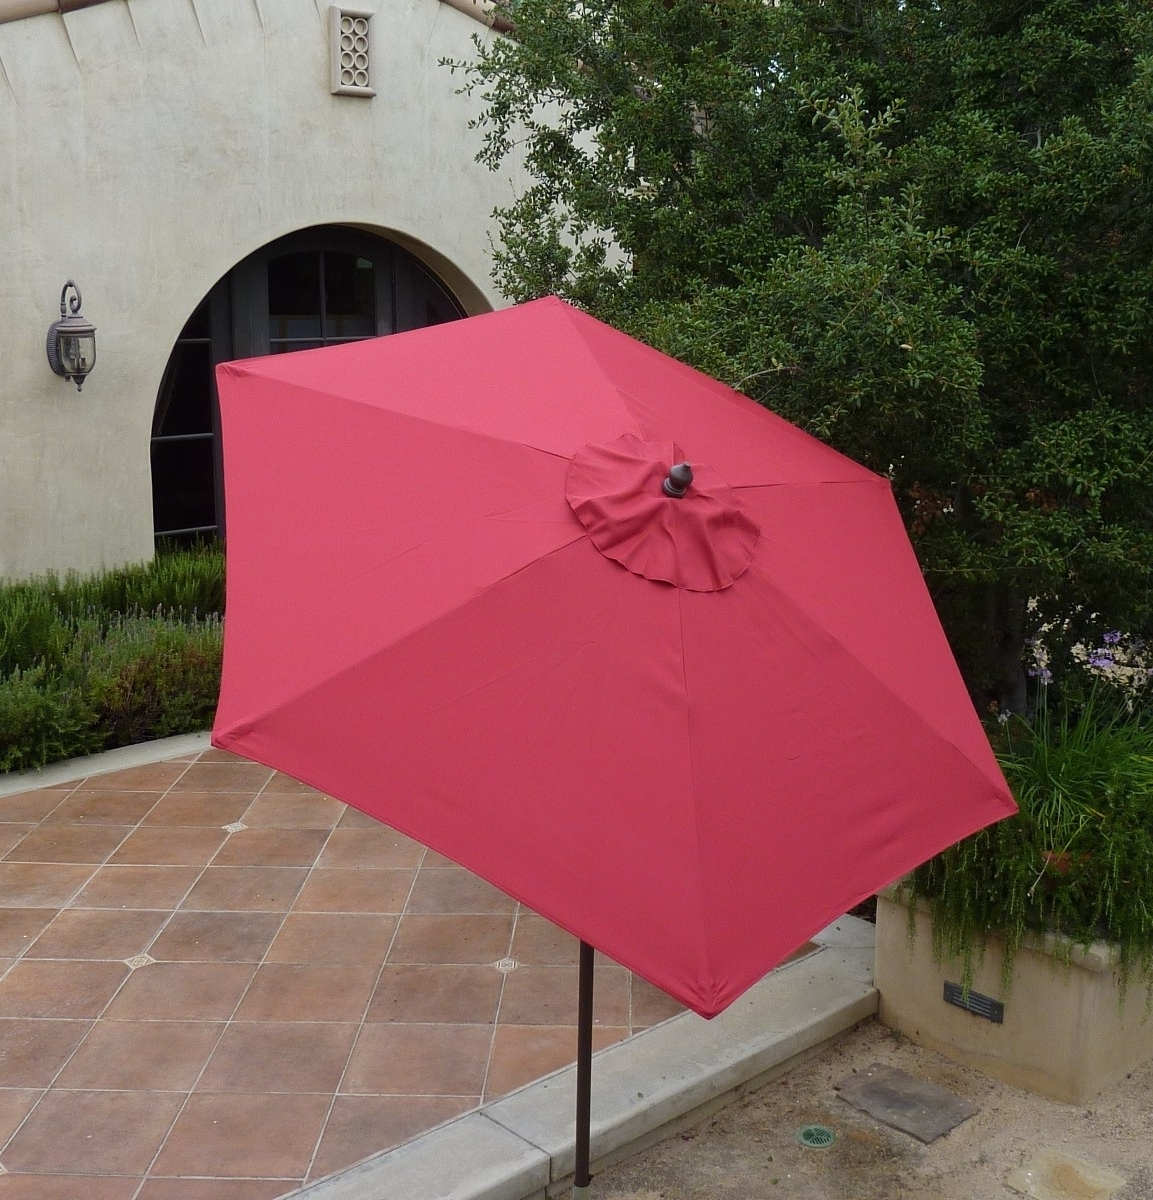 Most Recently Released Pink Patio Umbrellas Intended For 54 Pink Patio Umbrella, 6 Awesome Patio Umbrellas Excellence At Home (View 11 of 20)